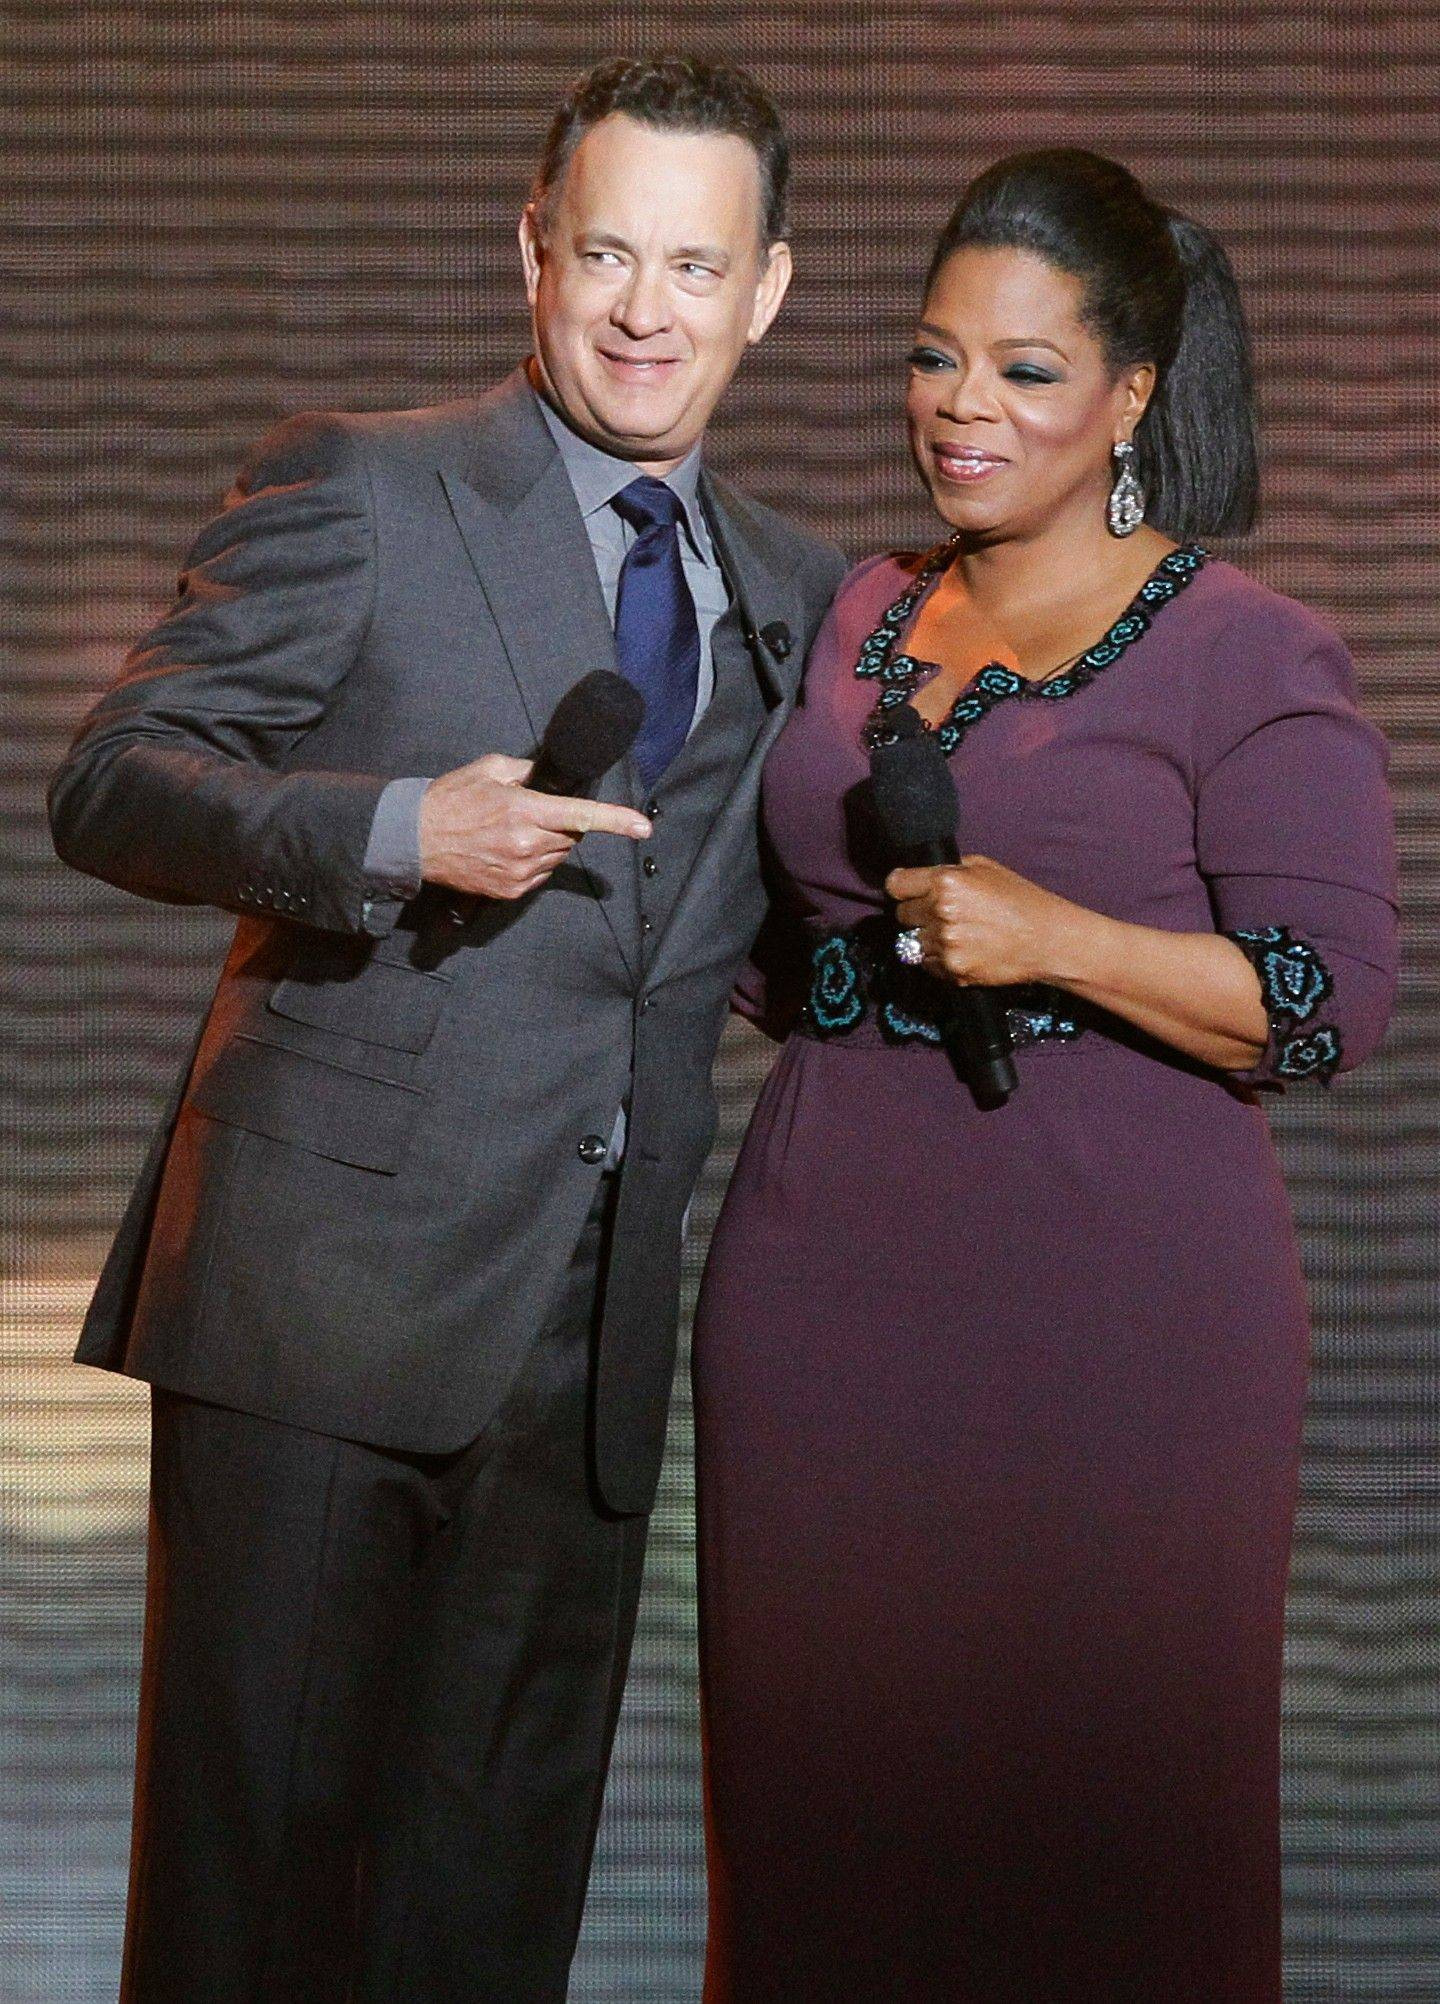 Tom Hanks appears with Oprah Winfrey during the star-studded double-taping of her final show Tuesday.